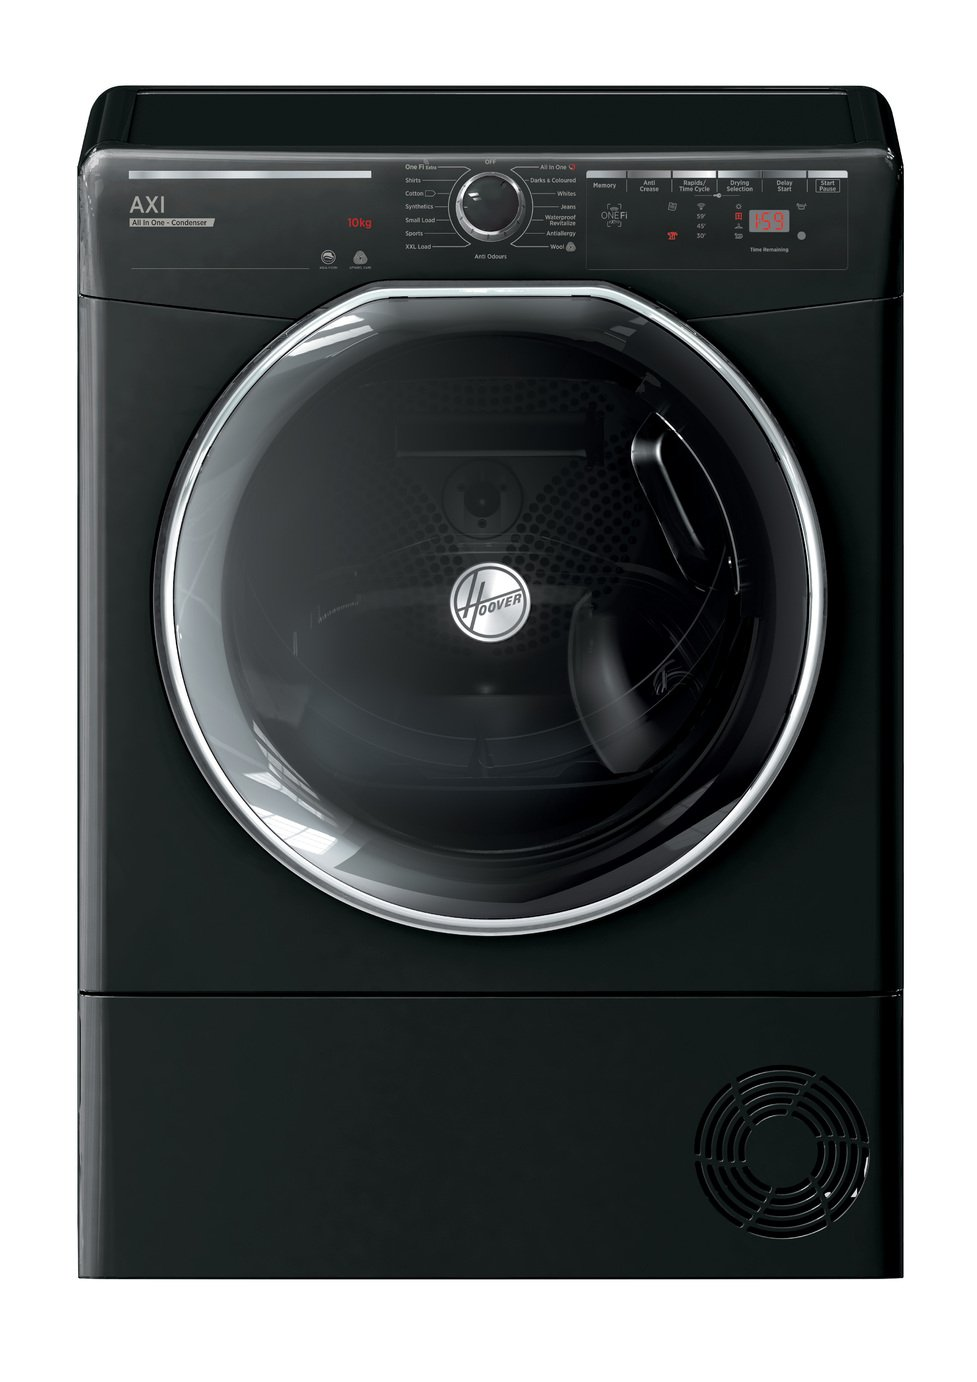 Hoover AXI ATDC9TKEB 9KG Condenser Tumble Dryer - Black